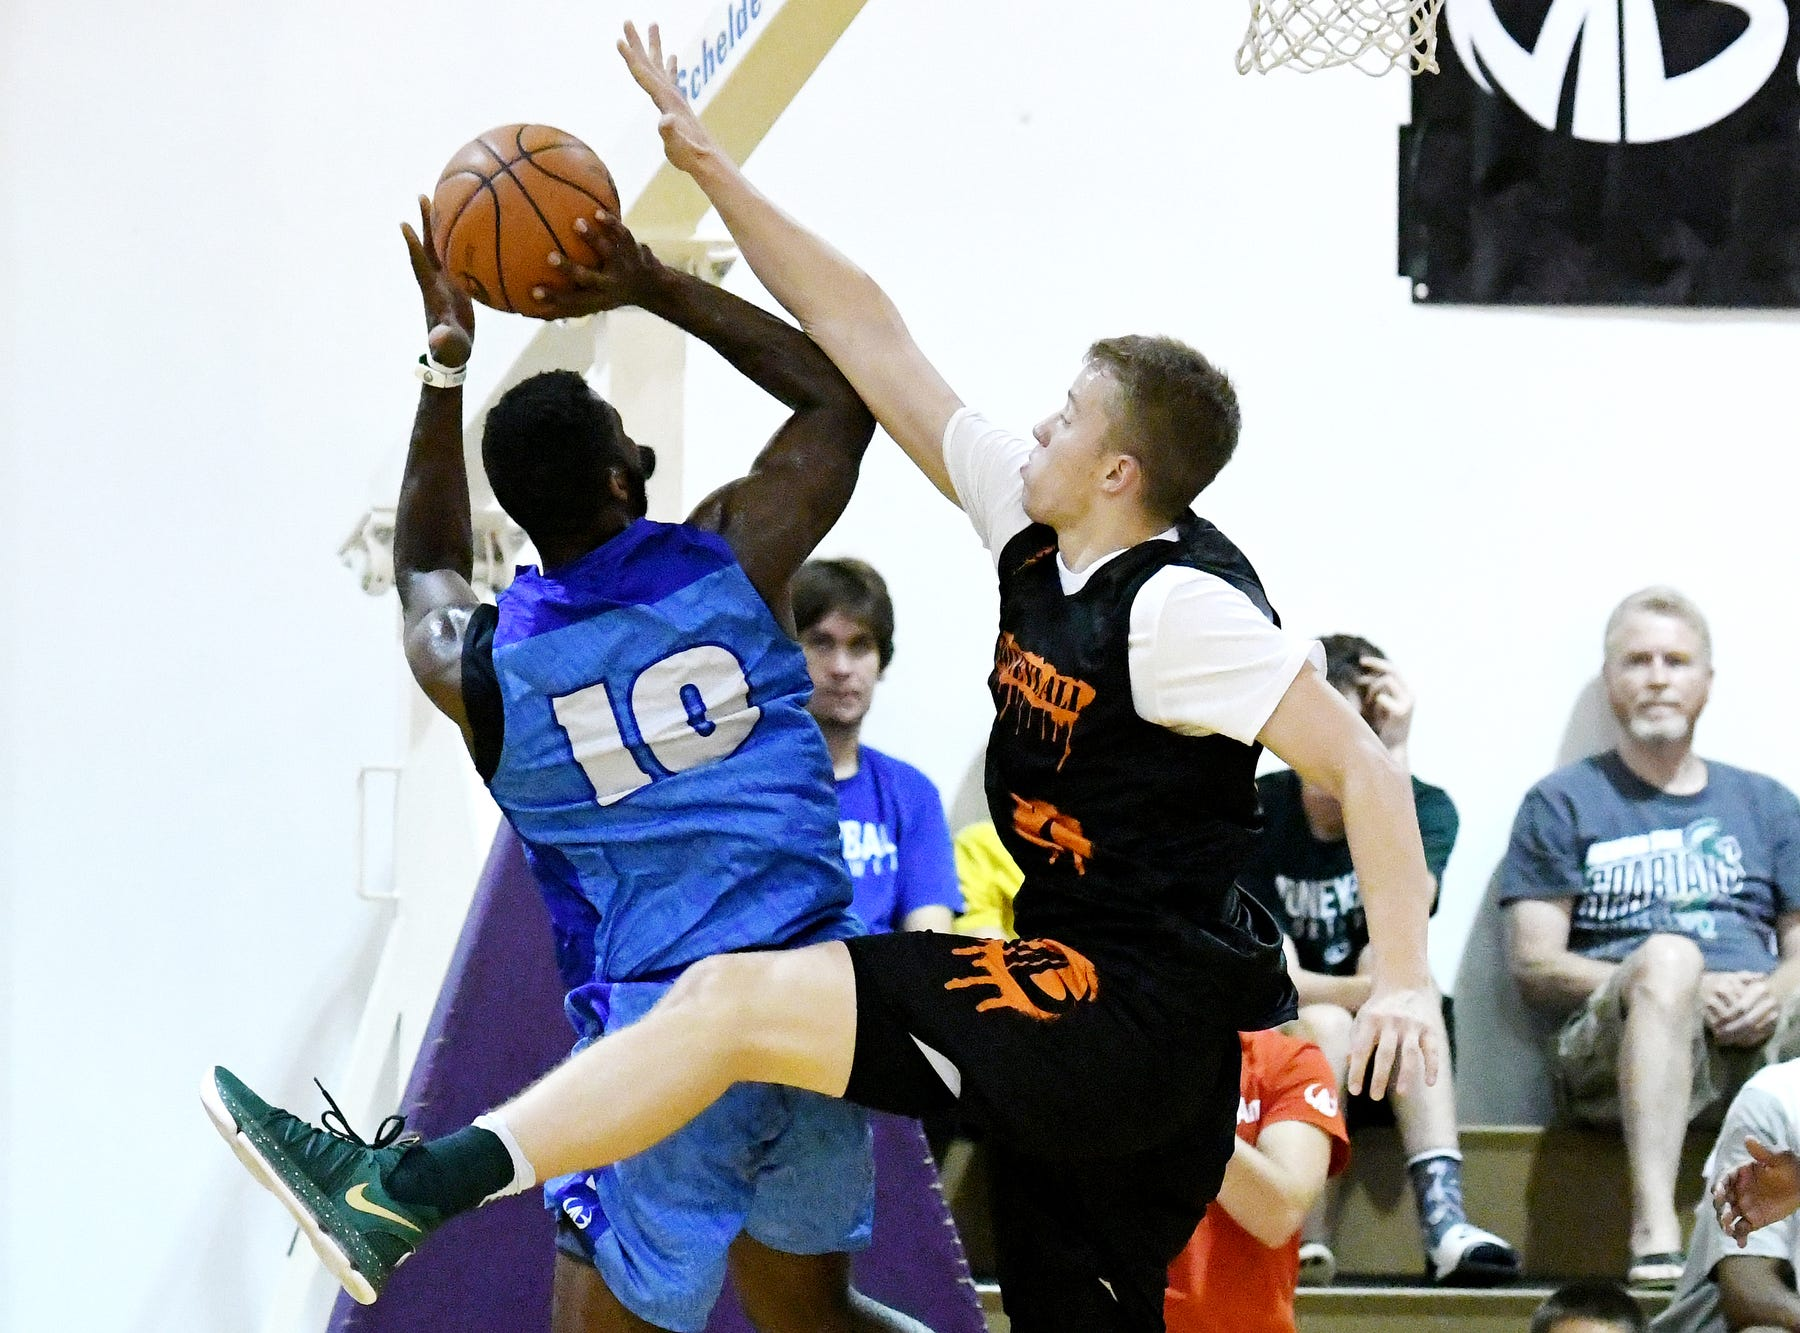 Team Splatter's Thomas Kithier, right, guards Team Definition's Gregory Roy on Thursday, Aug. 2, 2018, during the Moneyball Pro-Am summer basketball league championship game at Aim High in Dimondale. Team Definition won the game 99-83.